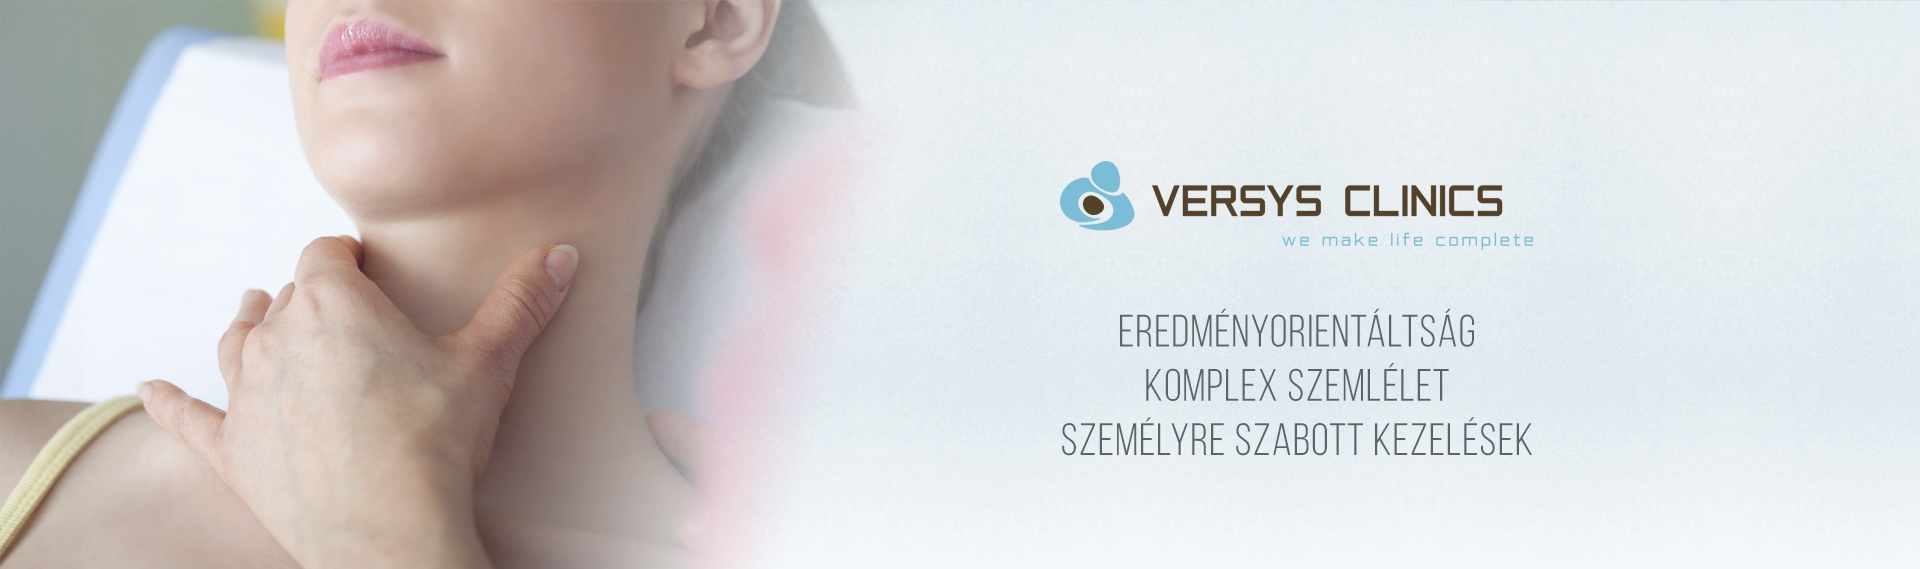 VERSYS CLINICS - ENDOCRINOLOGY CENTER